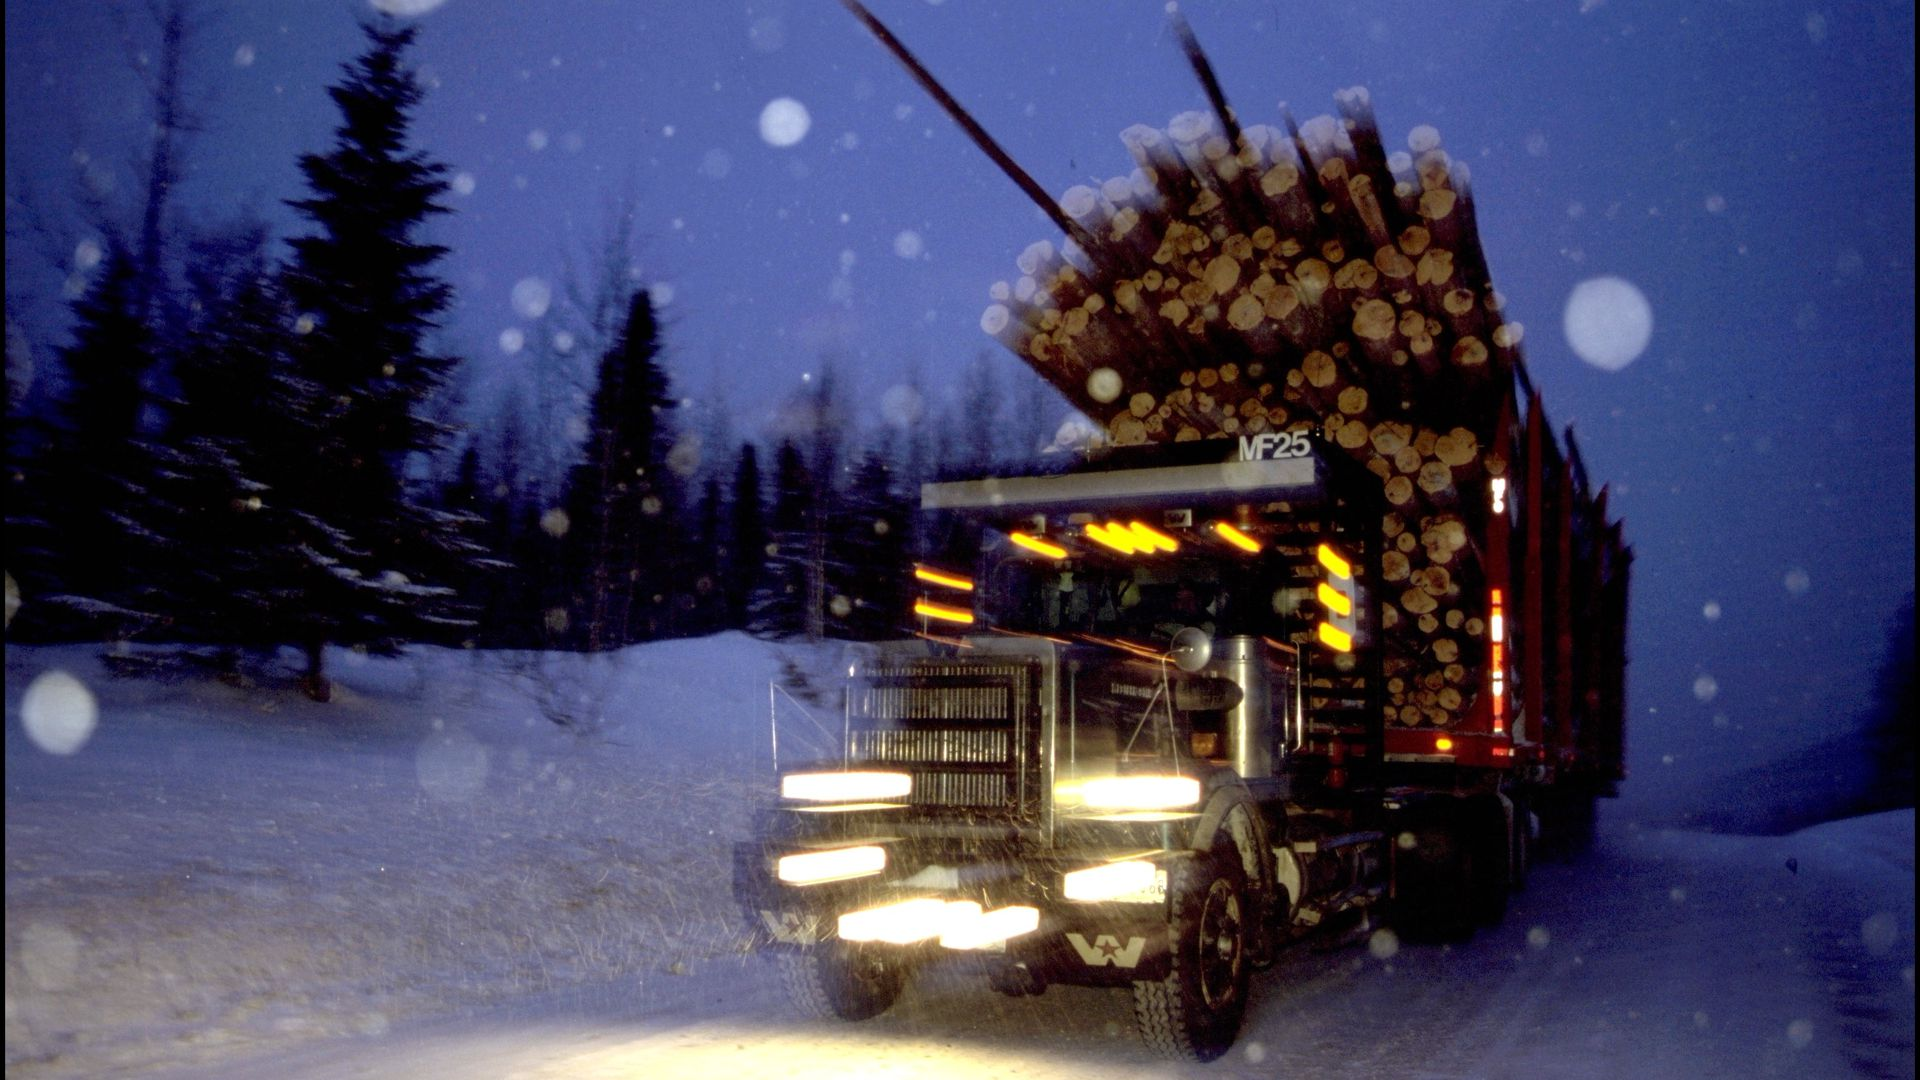 Truck carrying lumber in the snow